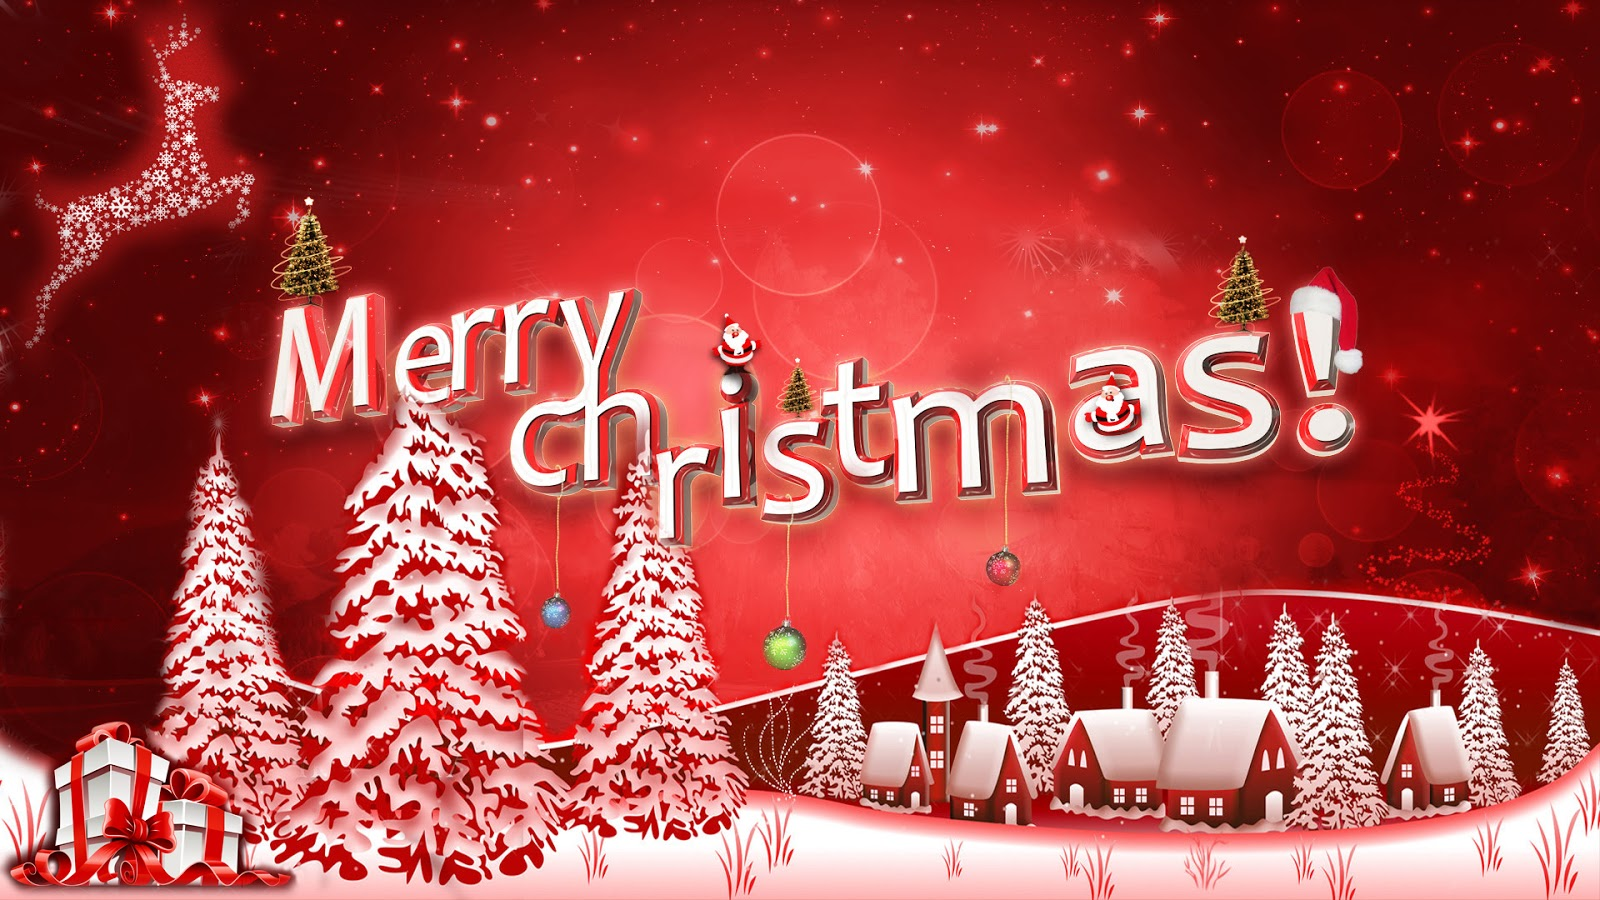 Top Christmas Greetings 15 Awesome Merry Christmas Greeting